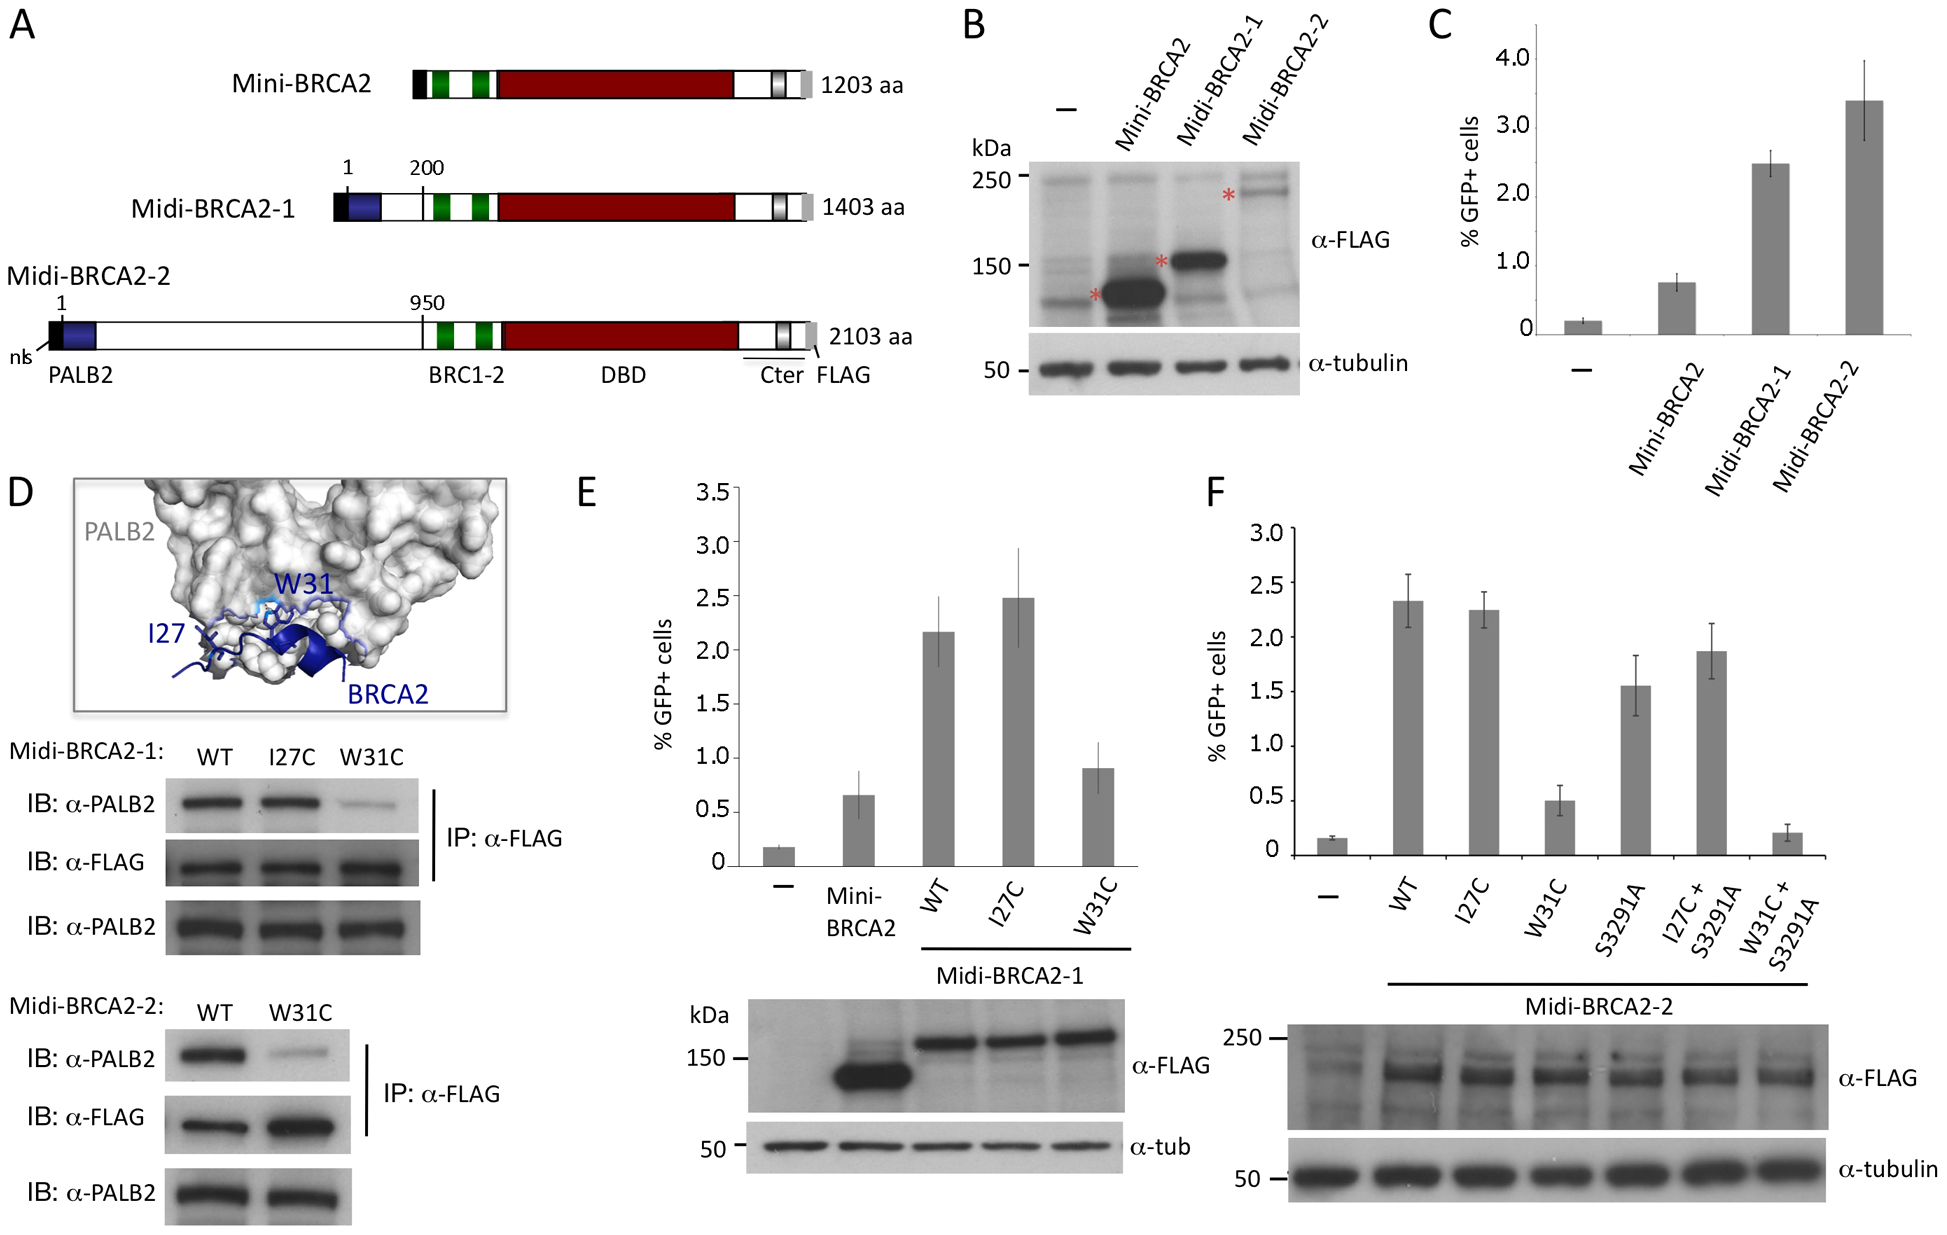 Midi-BRCA2s containing an intact PALB2 binding site restore HR levels.